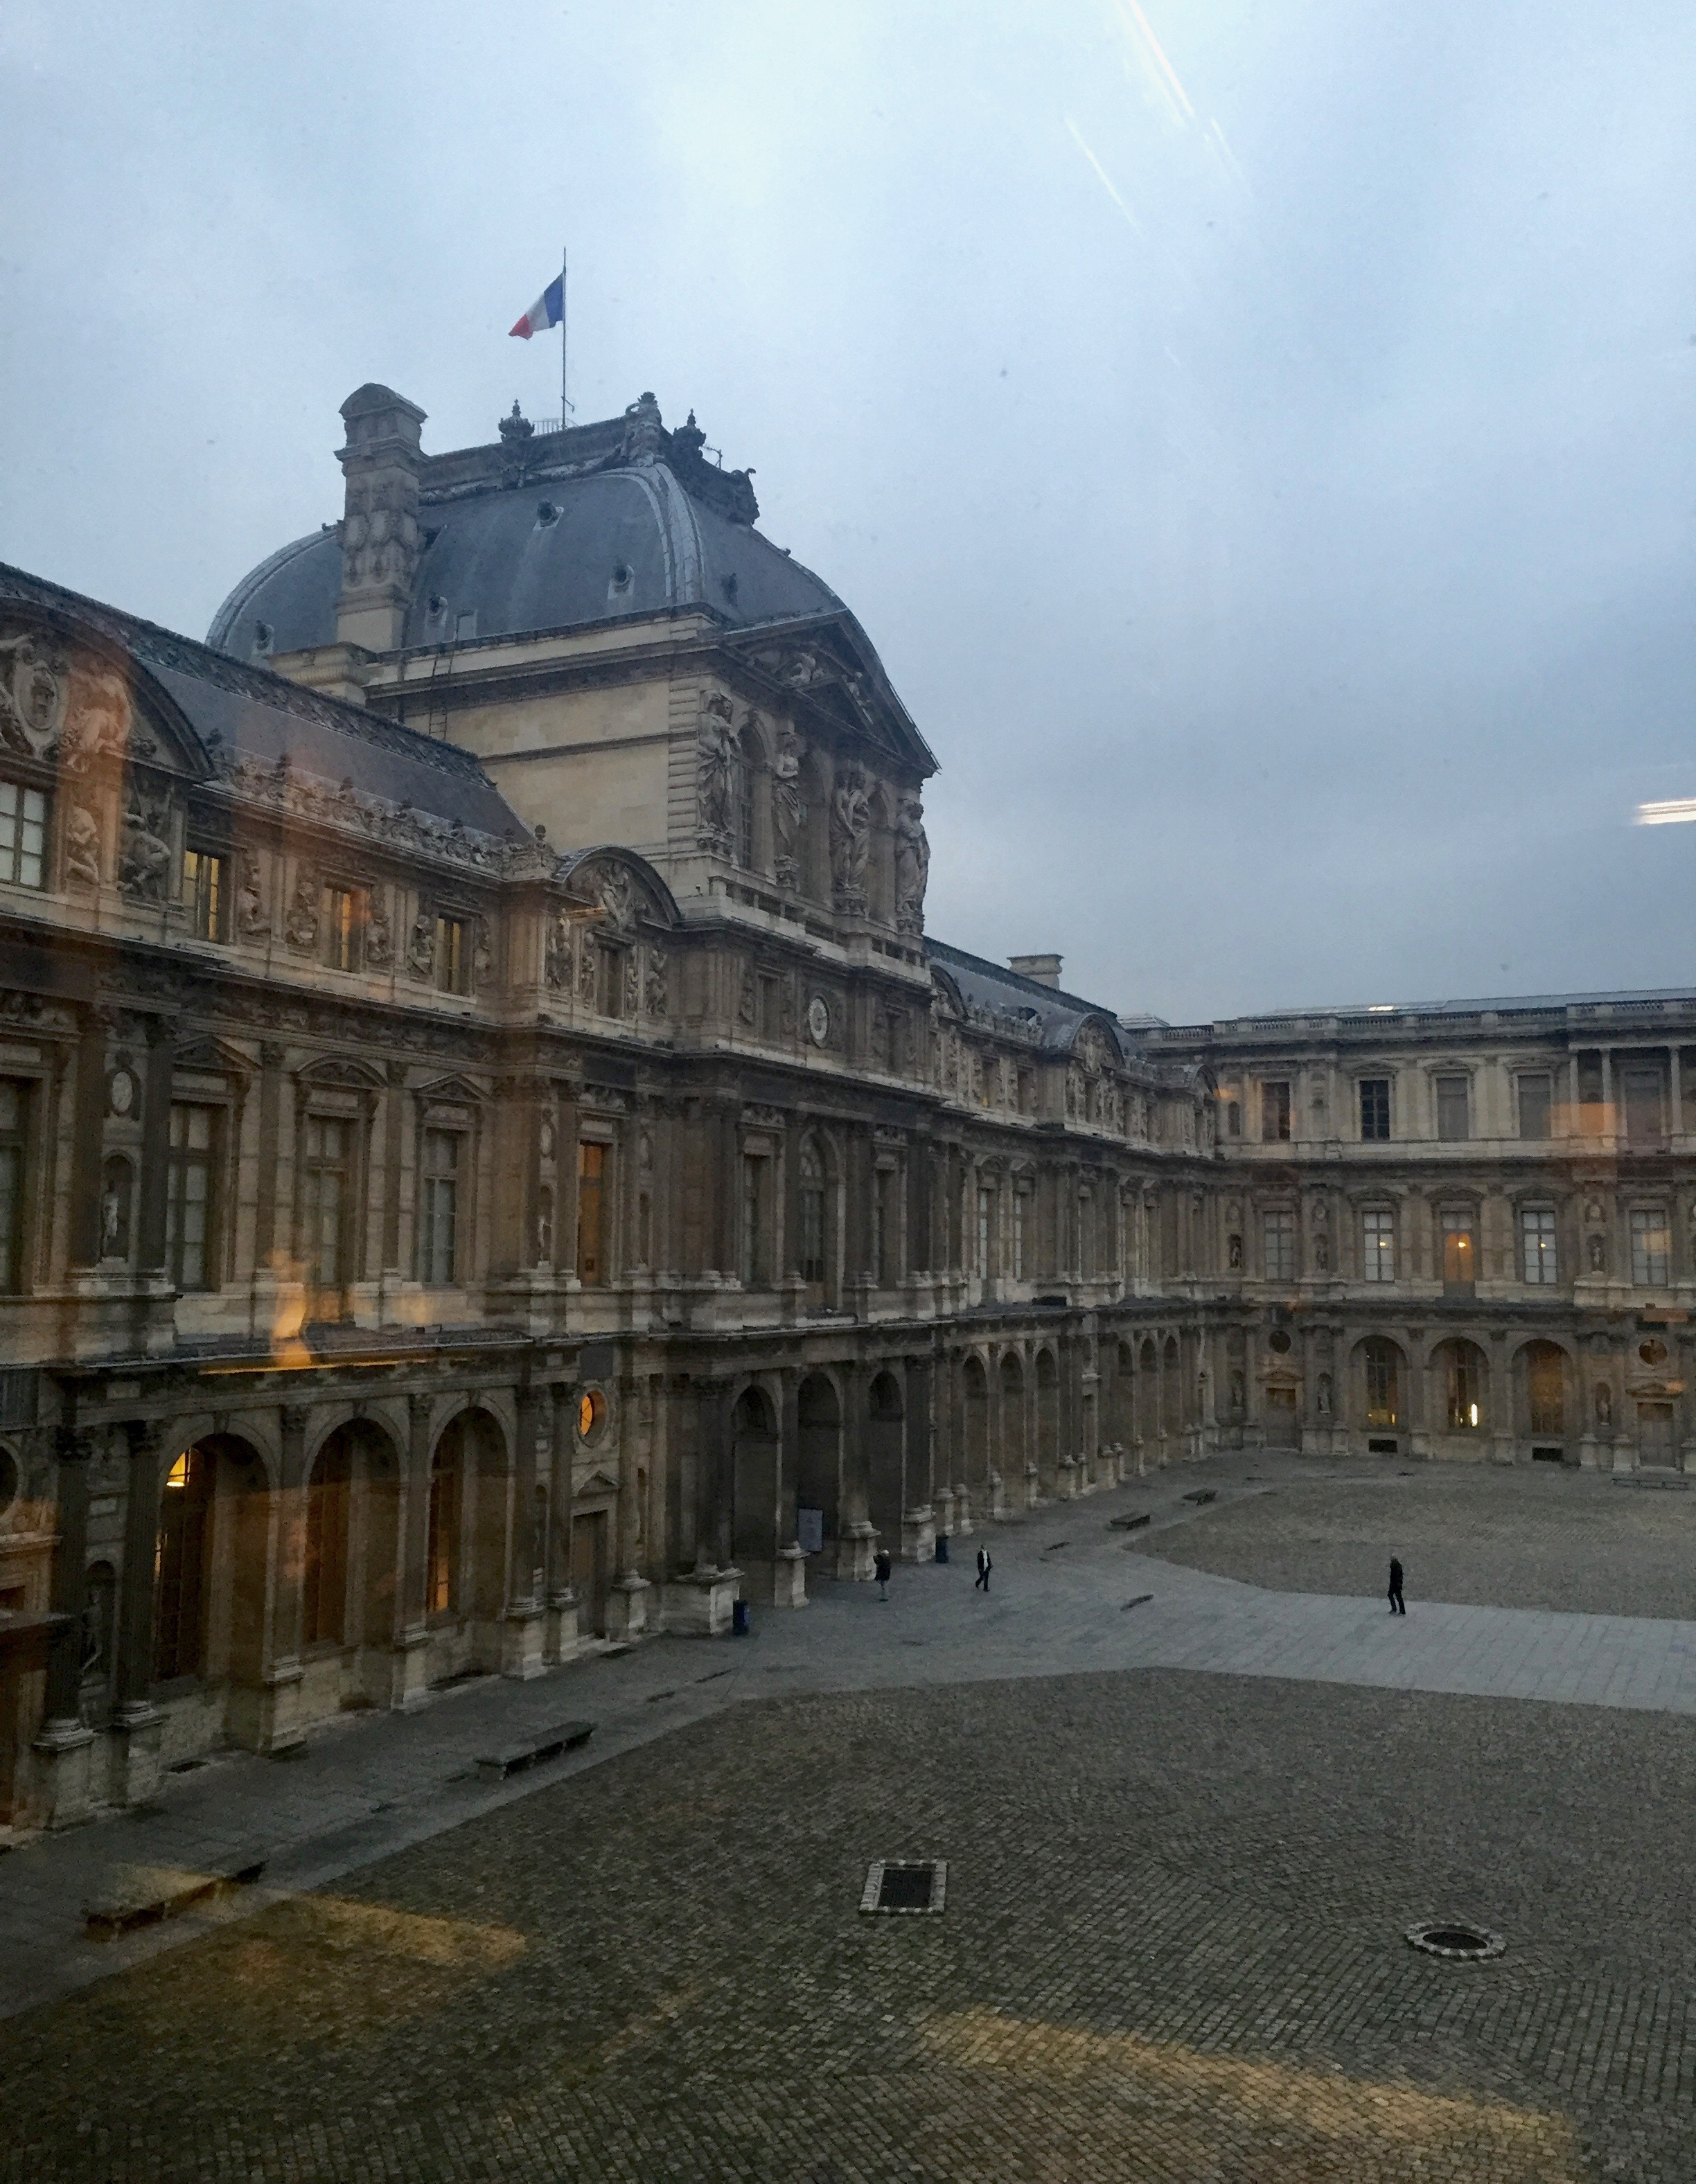 Le Louvre Courtyard   photo by L.D. Van Cleave